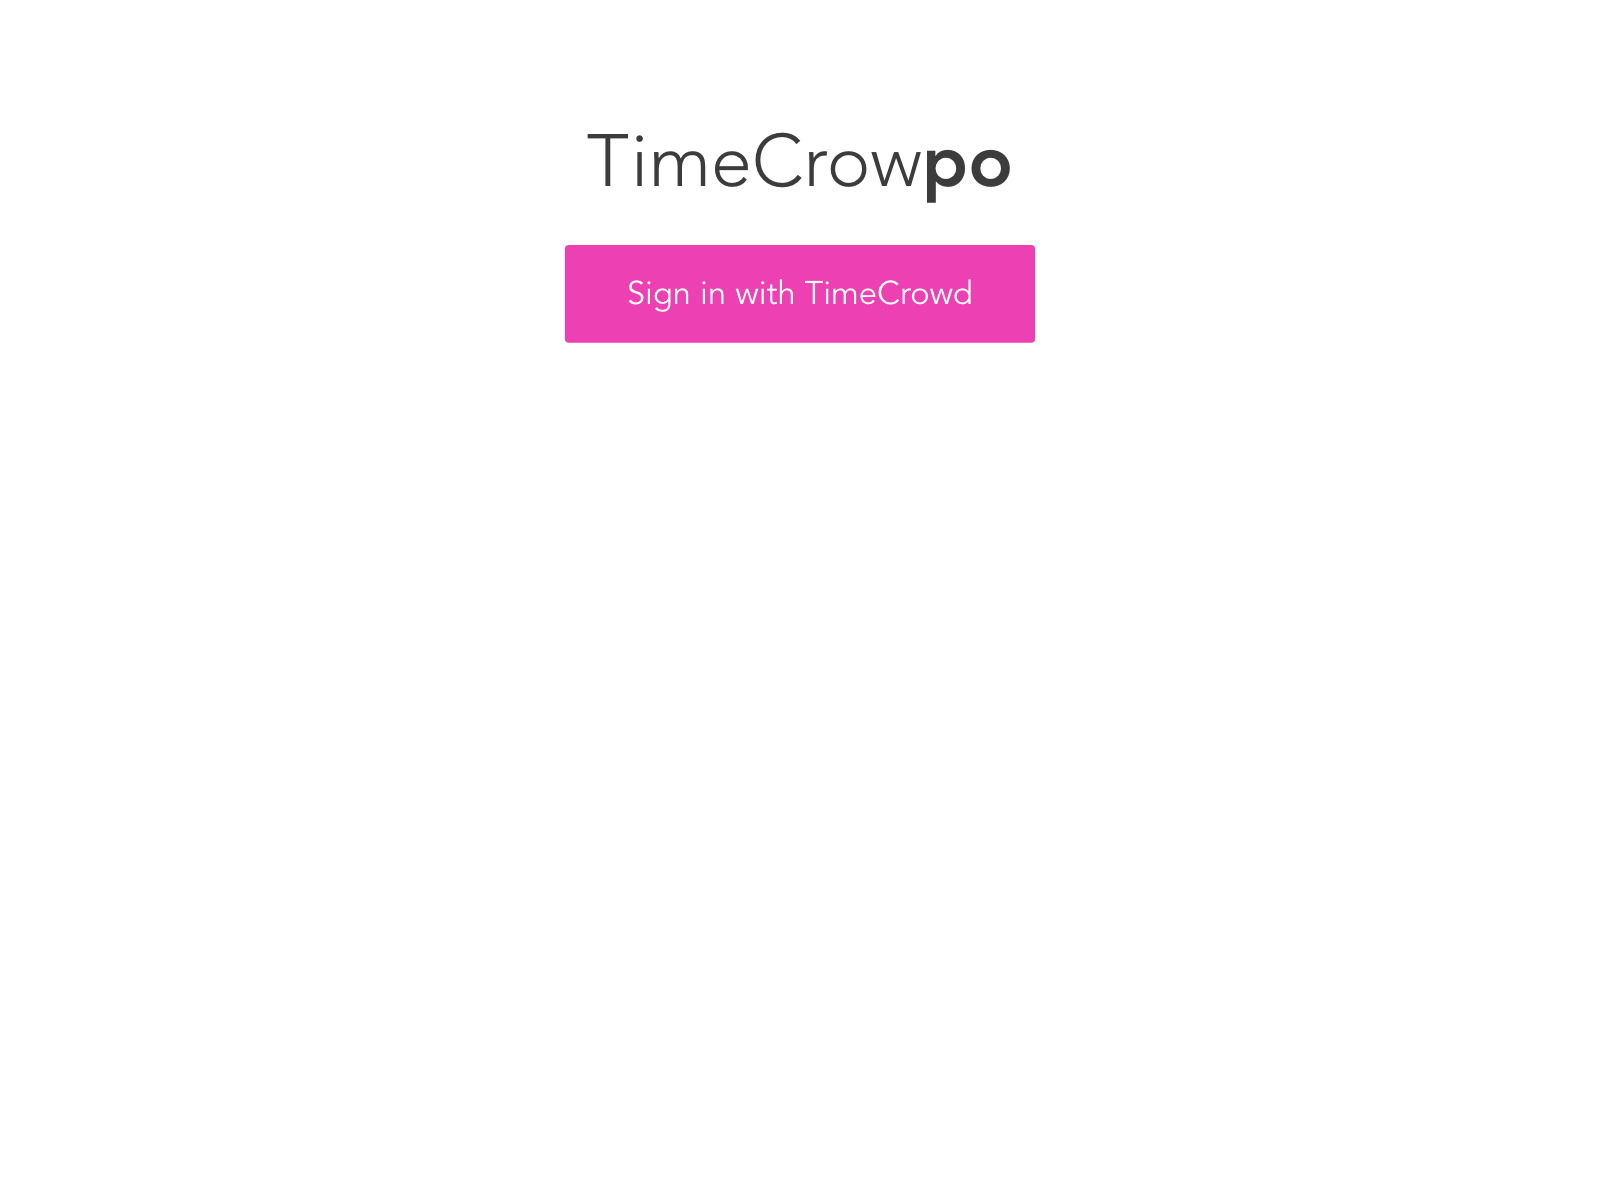 TimeCrowpoホーム